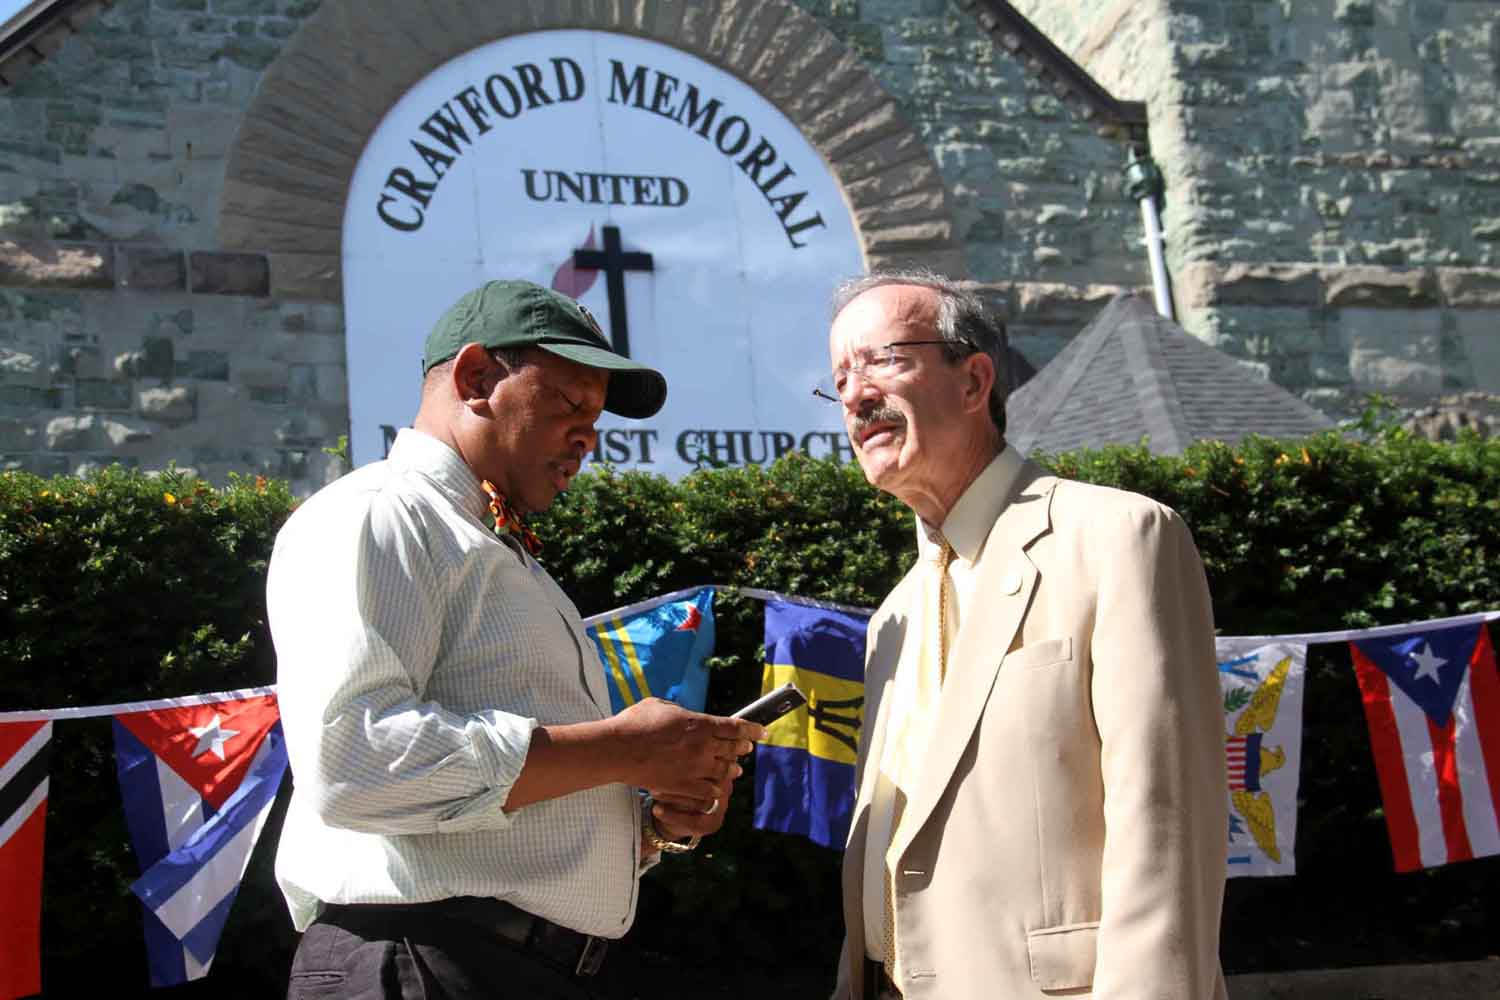 Councilman Andy King and Congressman Eliot Engel outside of the Crawford Memorial United Baptist Church on White Plains Road on Sunday.--Photo by David Greene